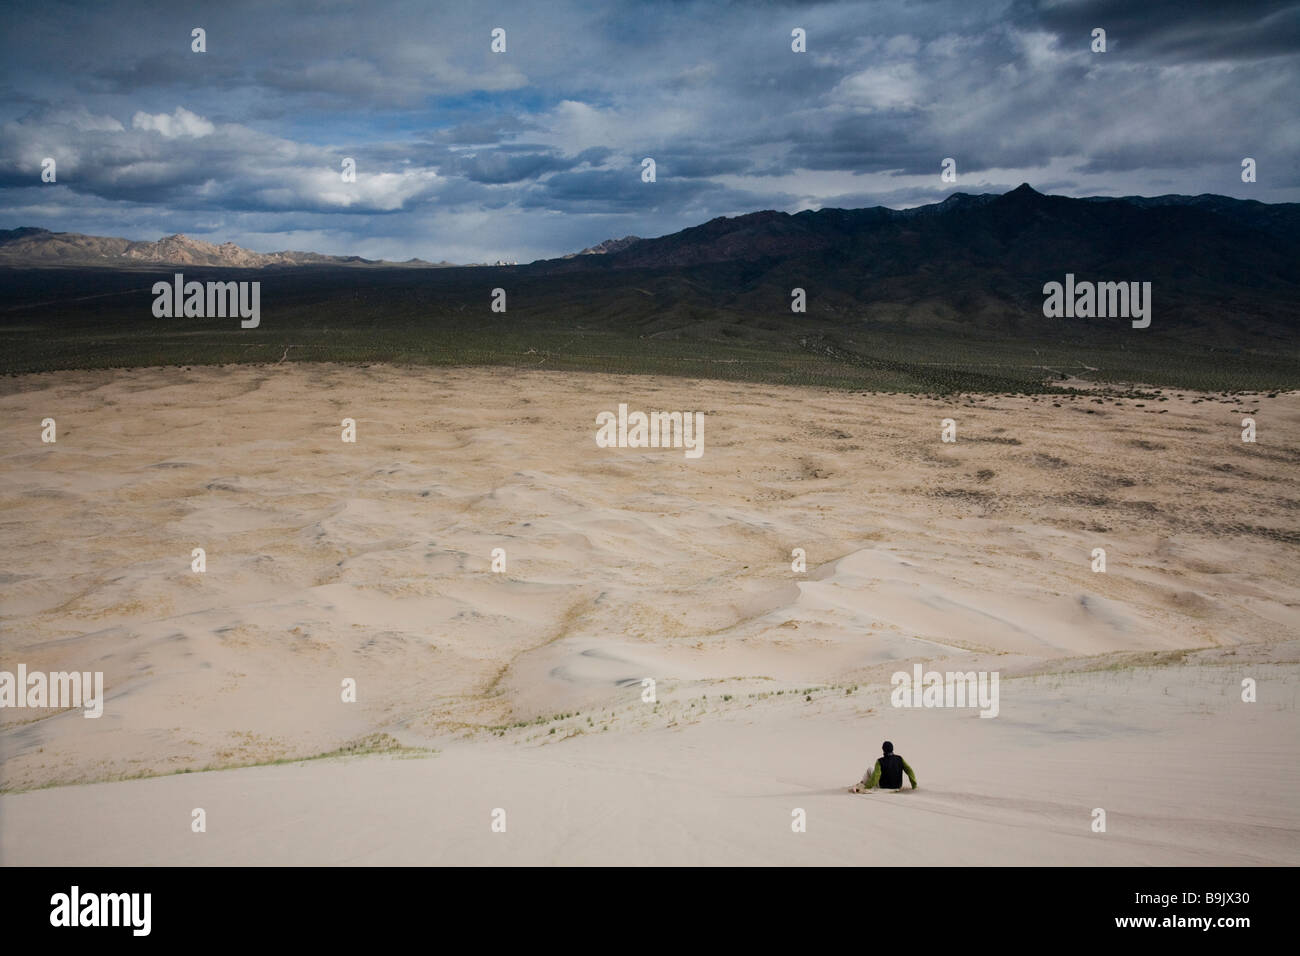 Un homme descend les dunes de sable au désert de Mojave, en Californie. Photo Stock